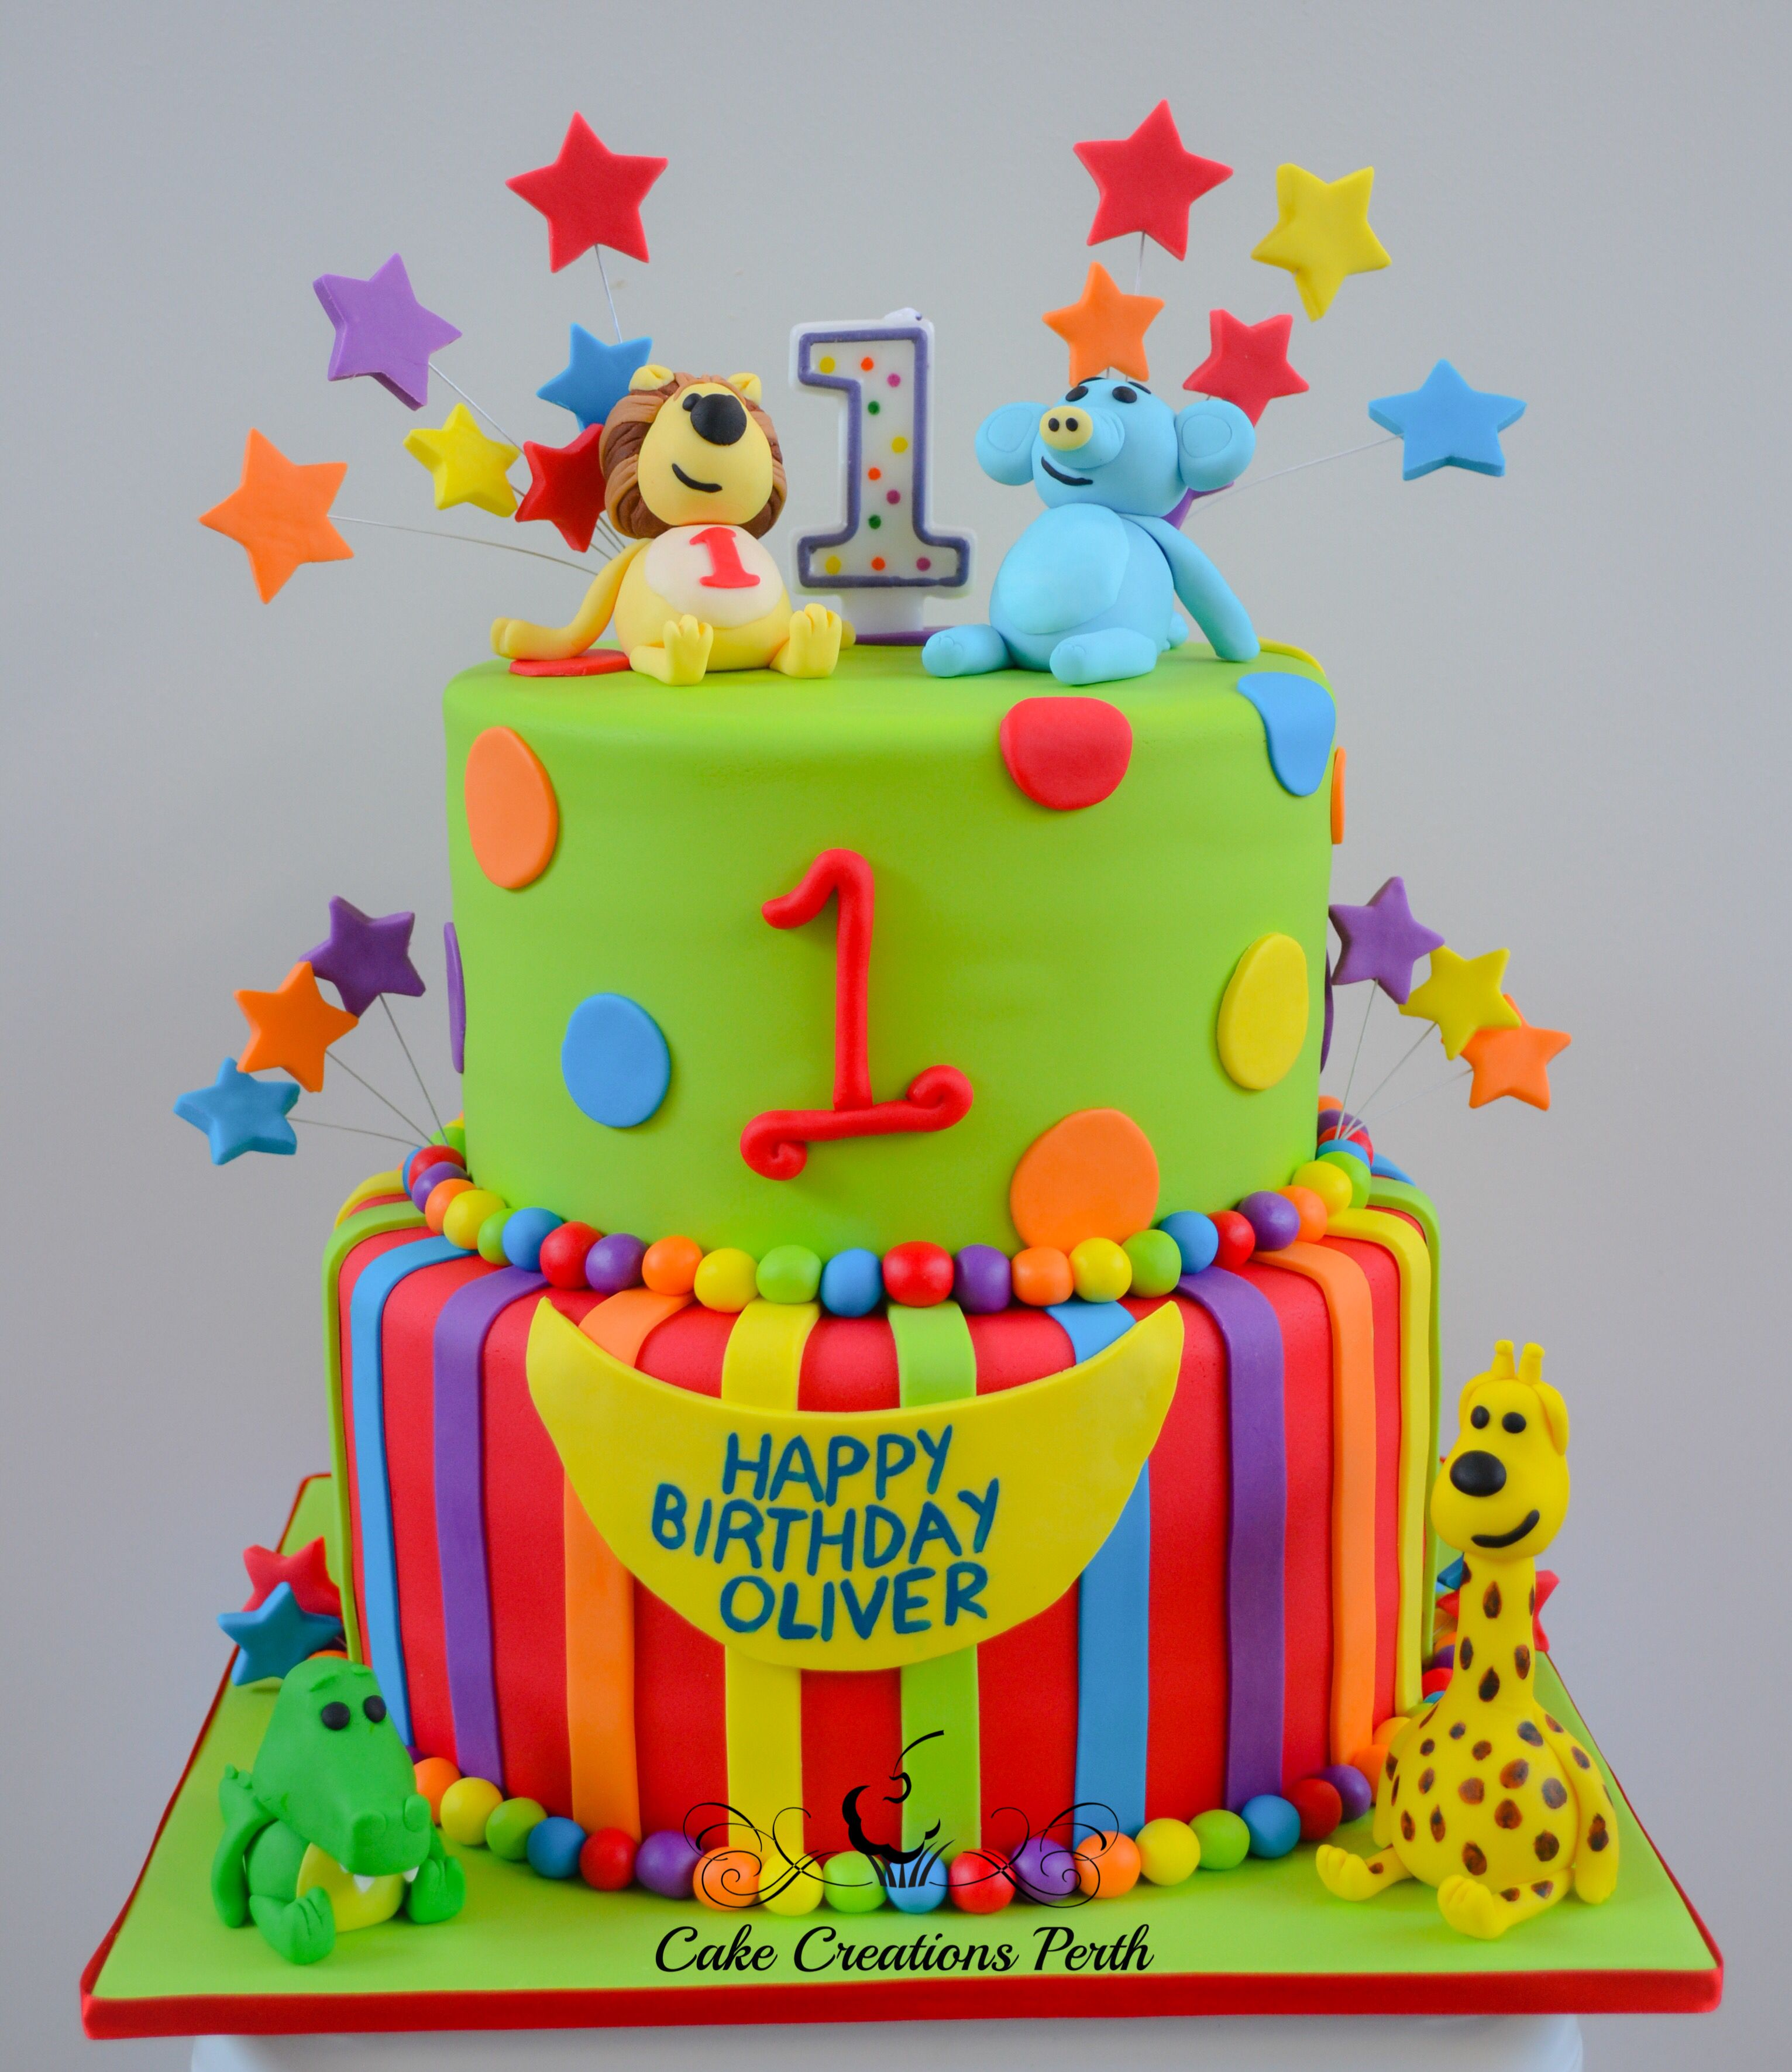 Raa Raa 1st Birthday Cake. Based on a design by the Pink